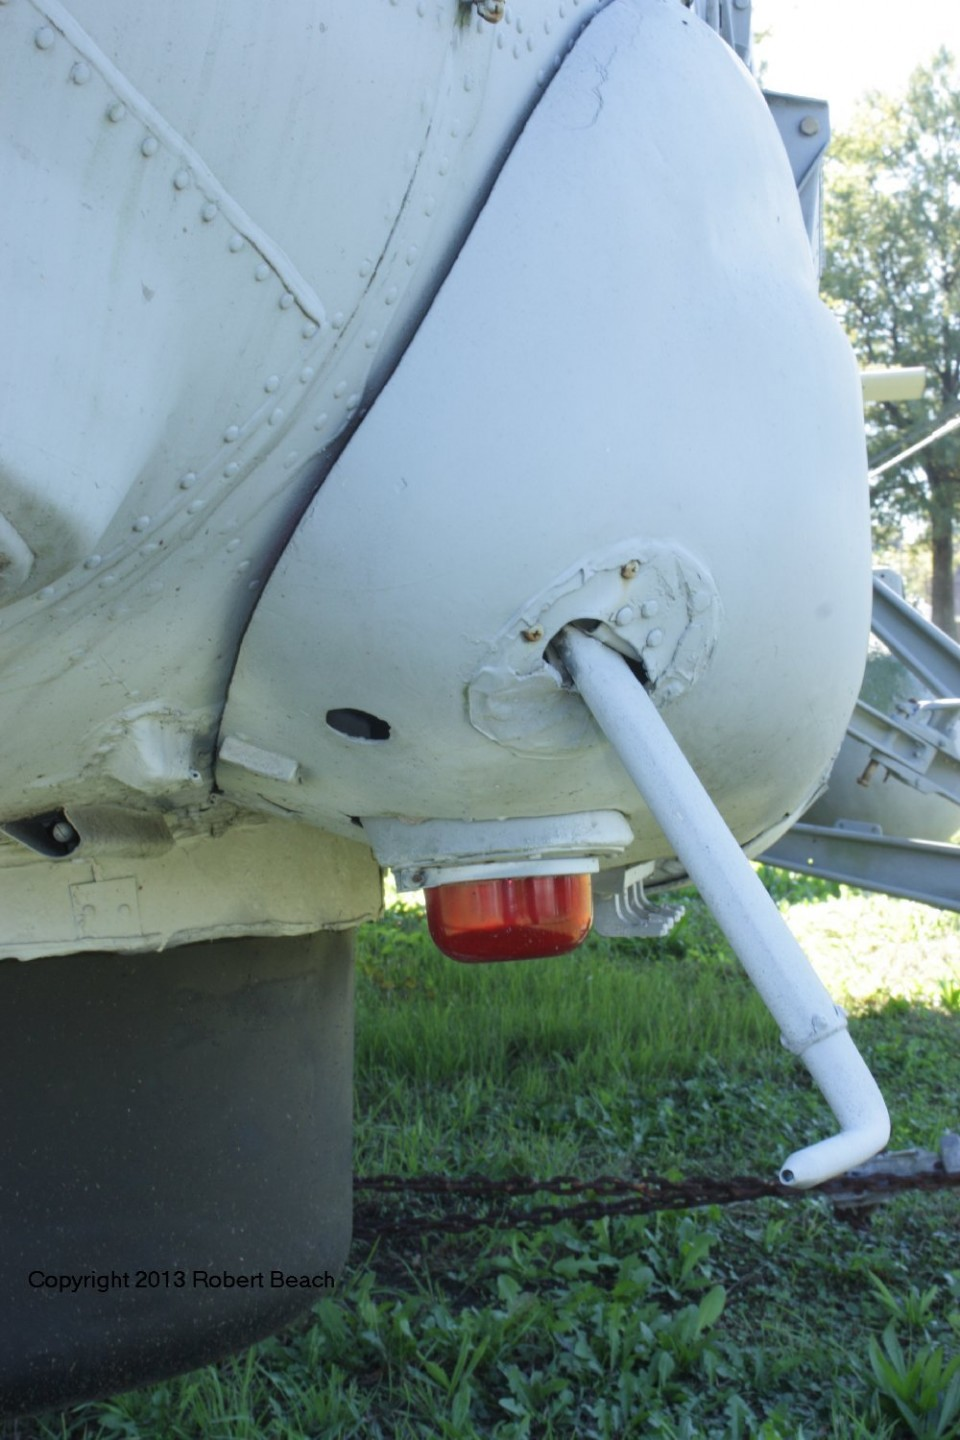 port gear fairing frm frnt and pitot 2